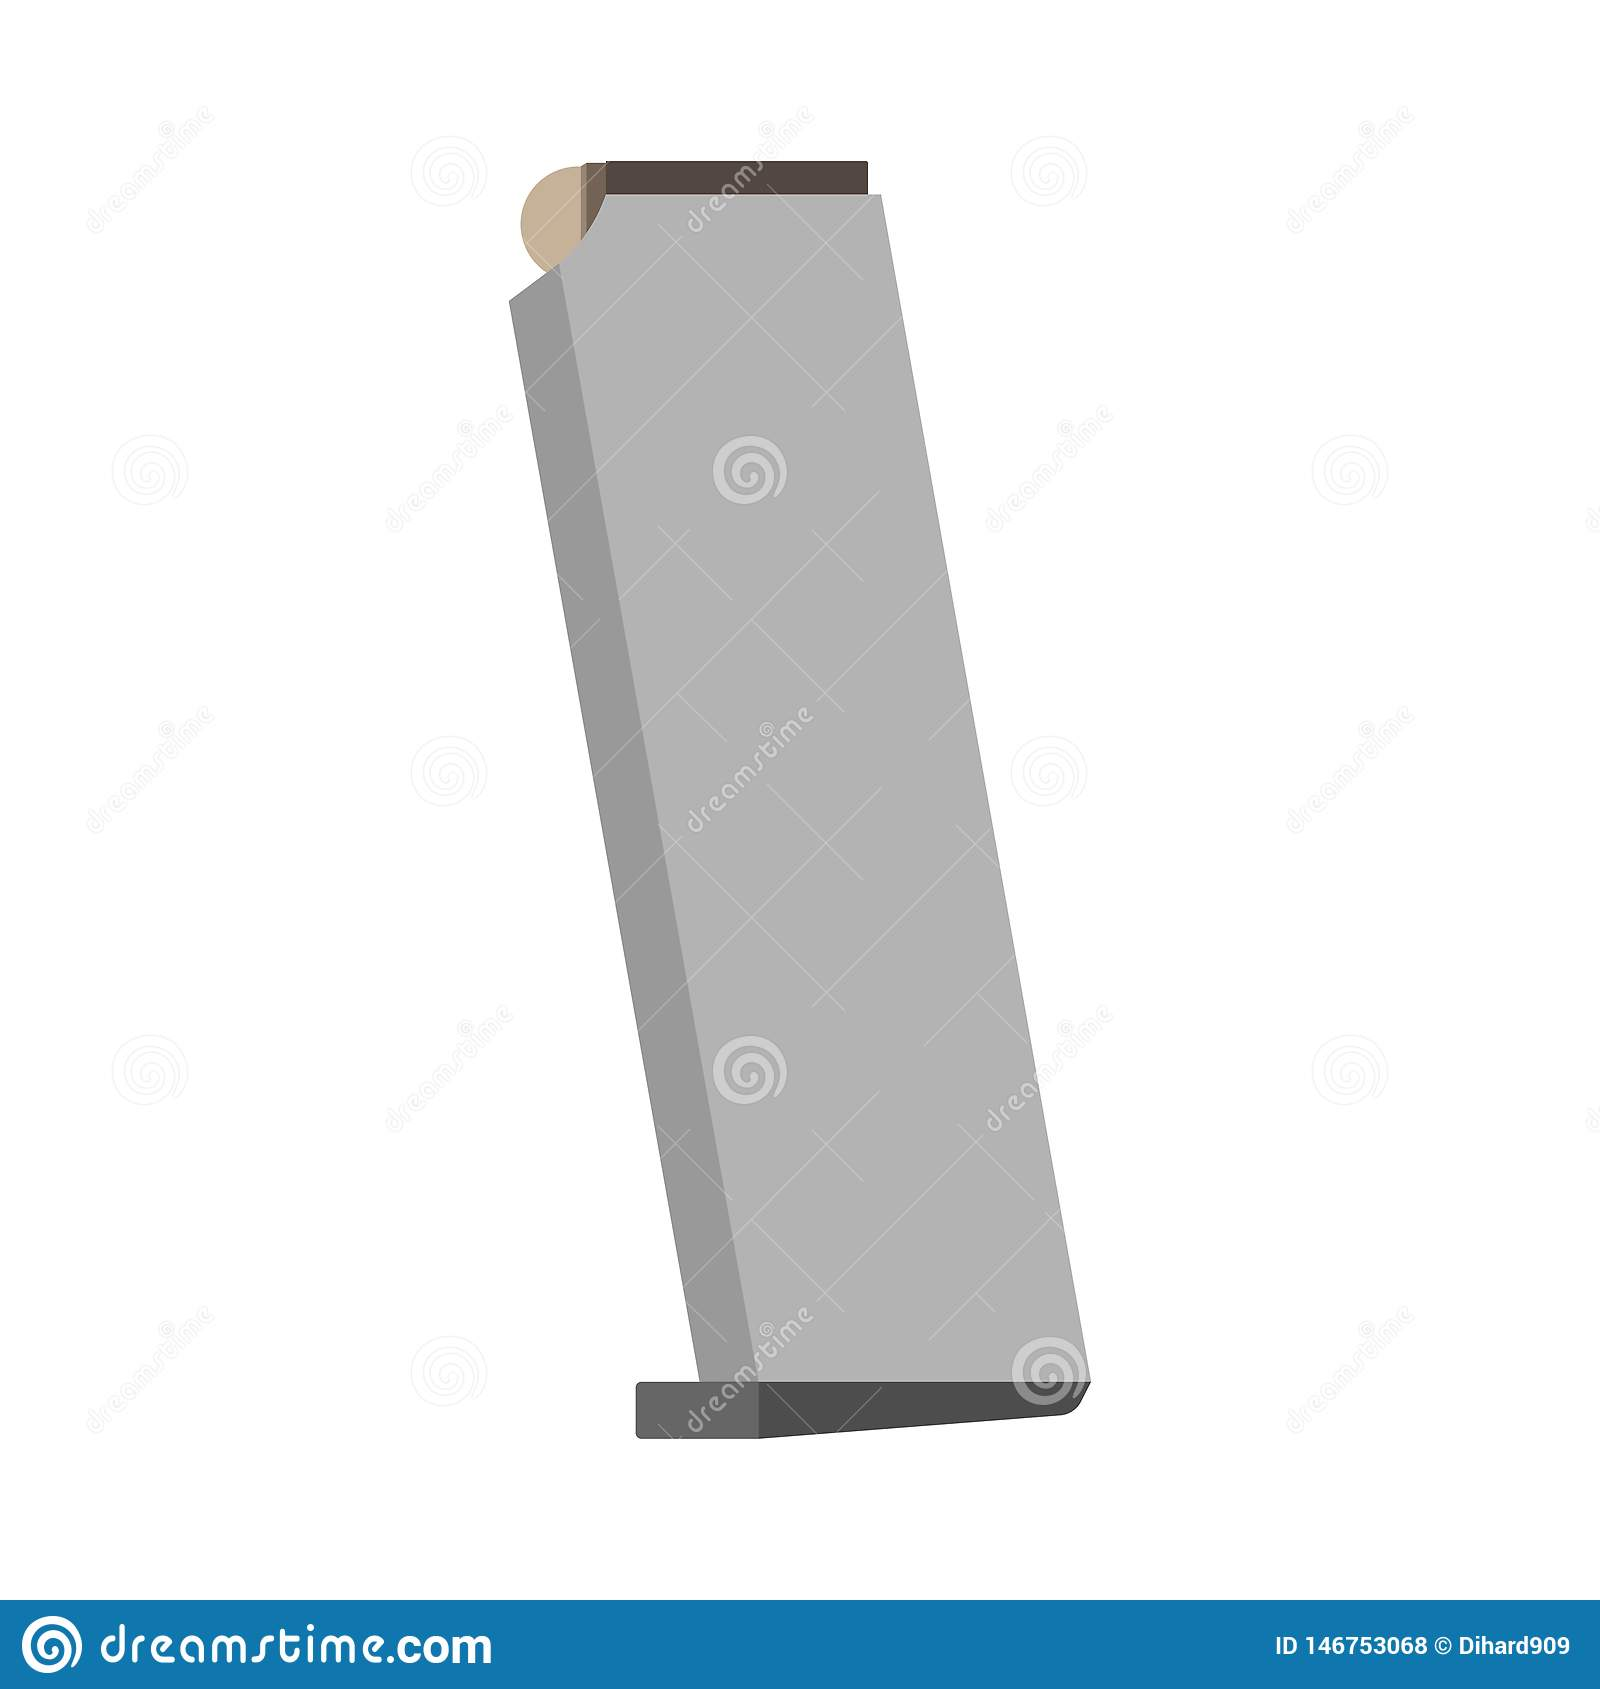 Pistol magazine ammo security vector icon. Glock ammunition military isolated white with bullet caliber barrel